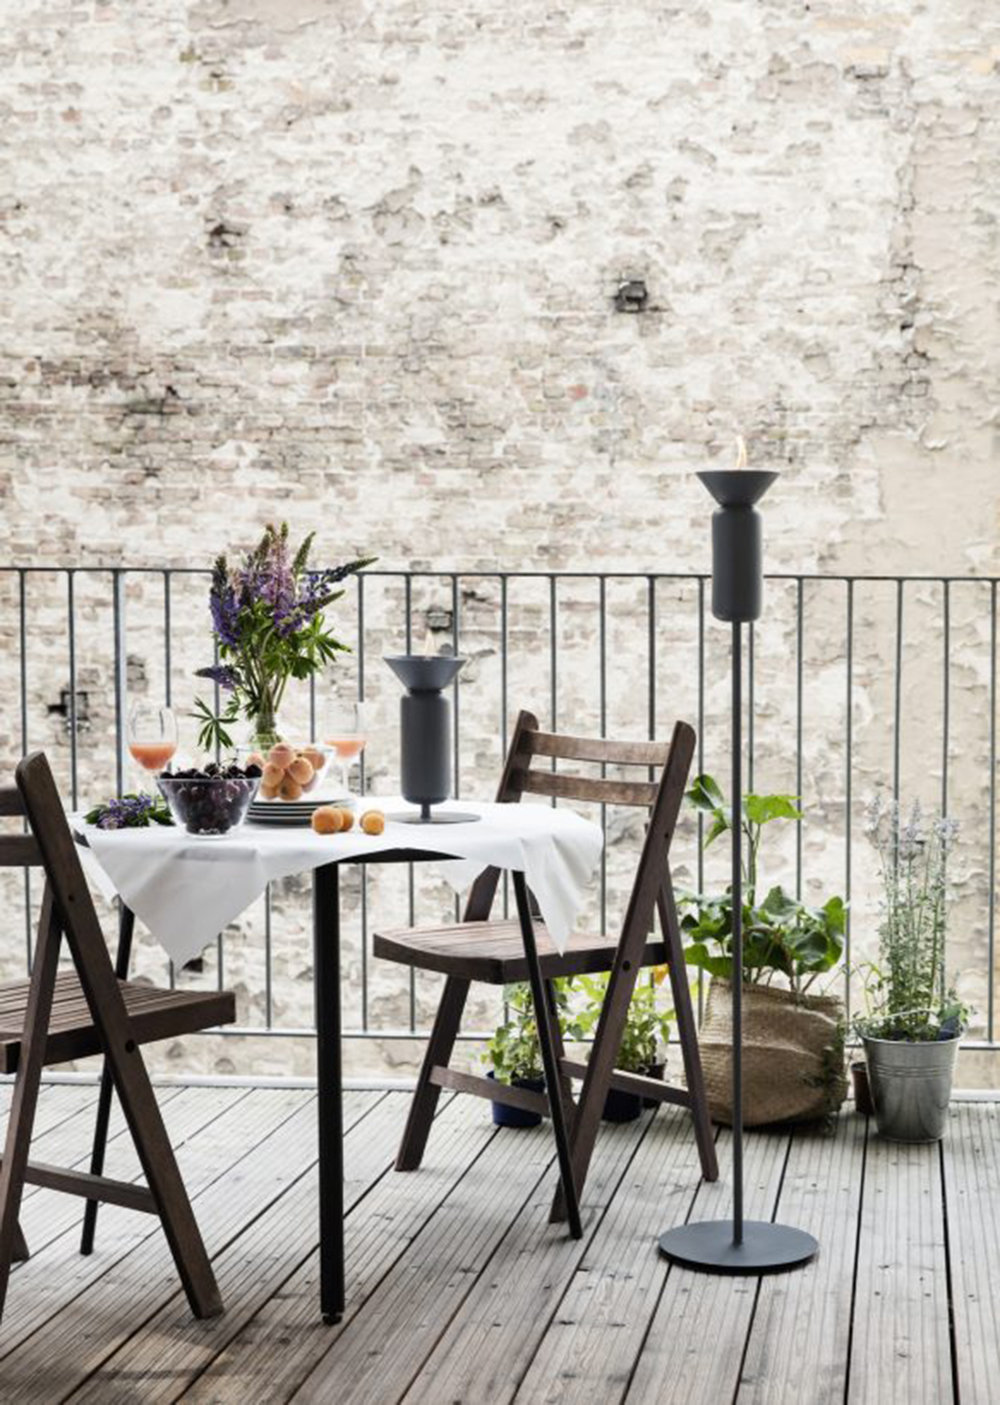 Poppy_Black-grey_skinny_table_and_long_balcony-Low_res_Photo-Chris_Tonnesen-583x819.jpg